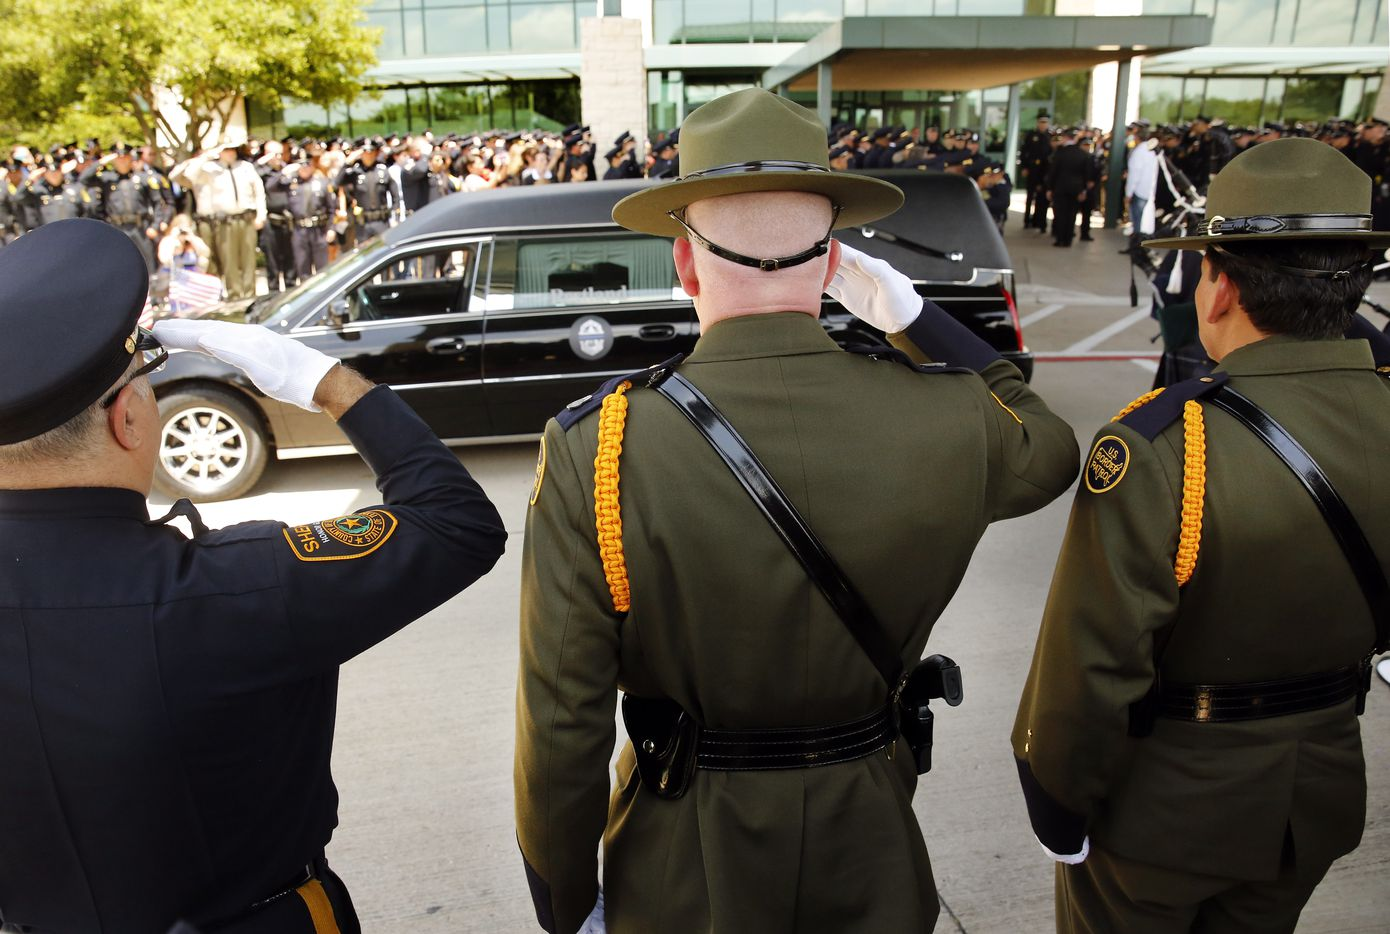 Border Patrol officers (right) and others salute as the casket of fallen Dallas police officer Lorne Ahrens is brought out of Prestonwood Baptist Church in Plano, Wednesday, July 12, 2016.